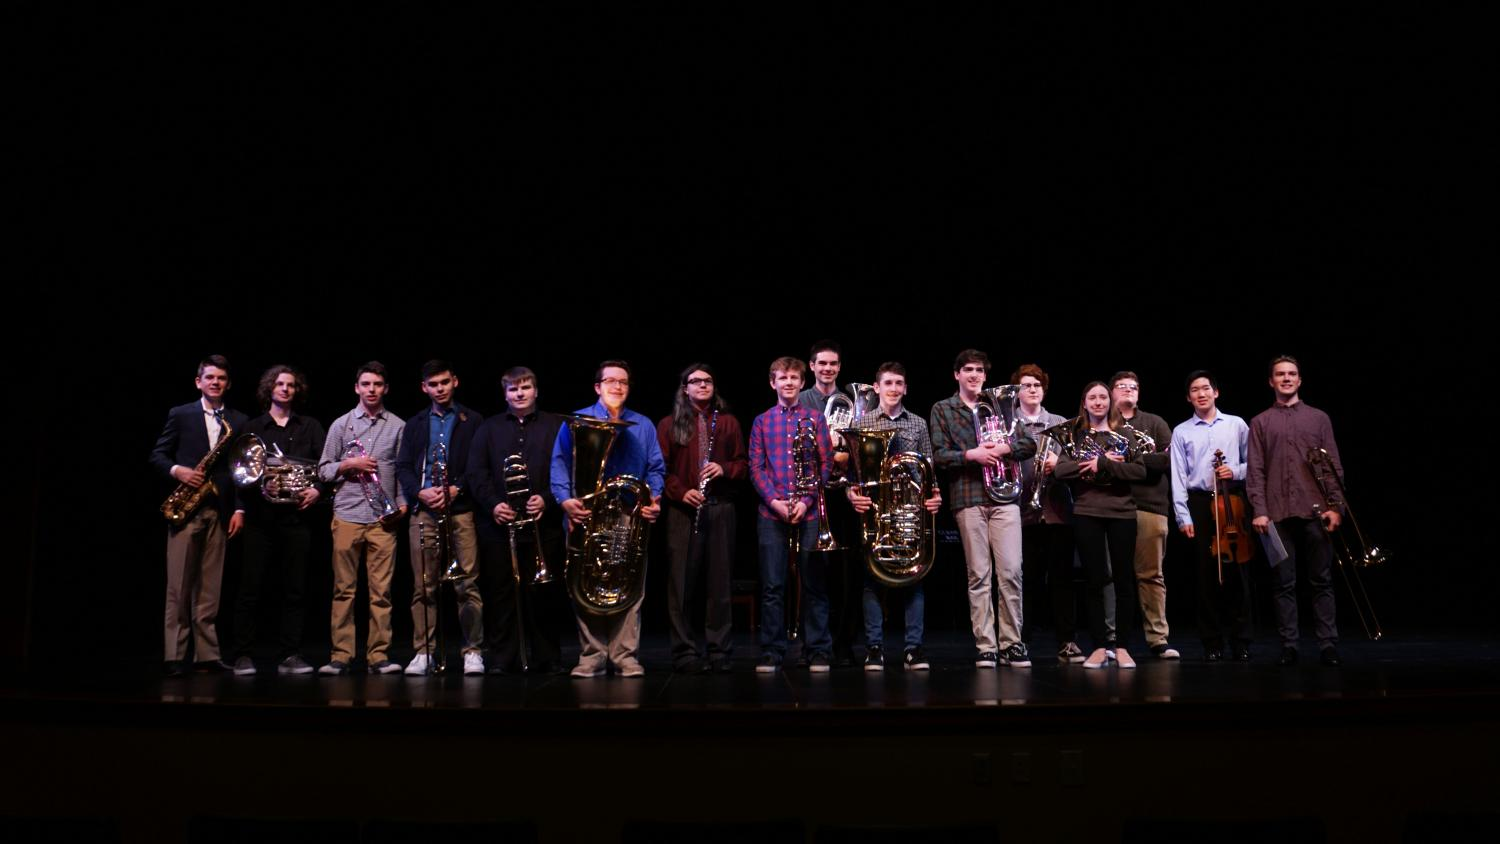 Musician competing in the solo and ensemble contests shared their pieces in the Performing Arts Center on April 26. From left to right: Will Glausi, junior; Jonathan Zilk, senior; Ryan Conrad, senior; Neil Yotsuya, senior; Jesse Anderson, sophomore; Eli Dodd, sophomore; Joaquin Socolofsky, senior; Henry Baumgardner, senior; Sheridan Hardy, junior; Carson Bradford, sophomore; Rhys Brunetto, sophomore; Jake Nielson, senior; Lauren Griffith, senior; Noah Gardner, senior; Eaton Lin, senior; Max Becker, junior.